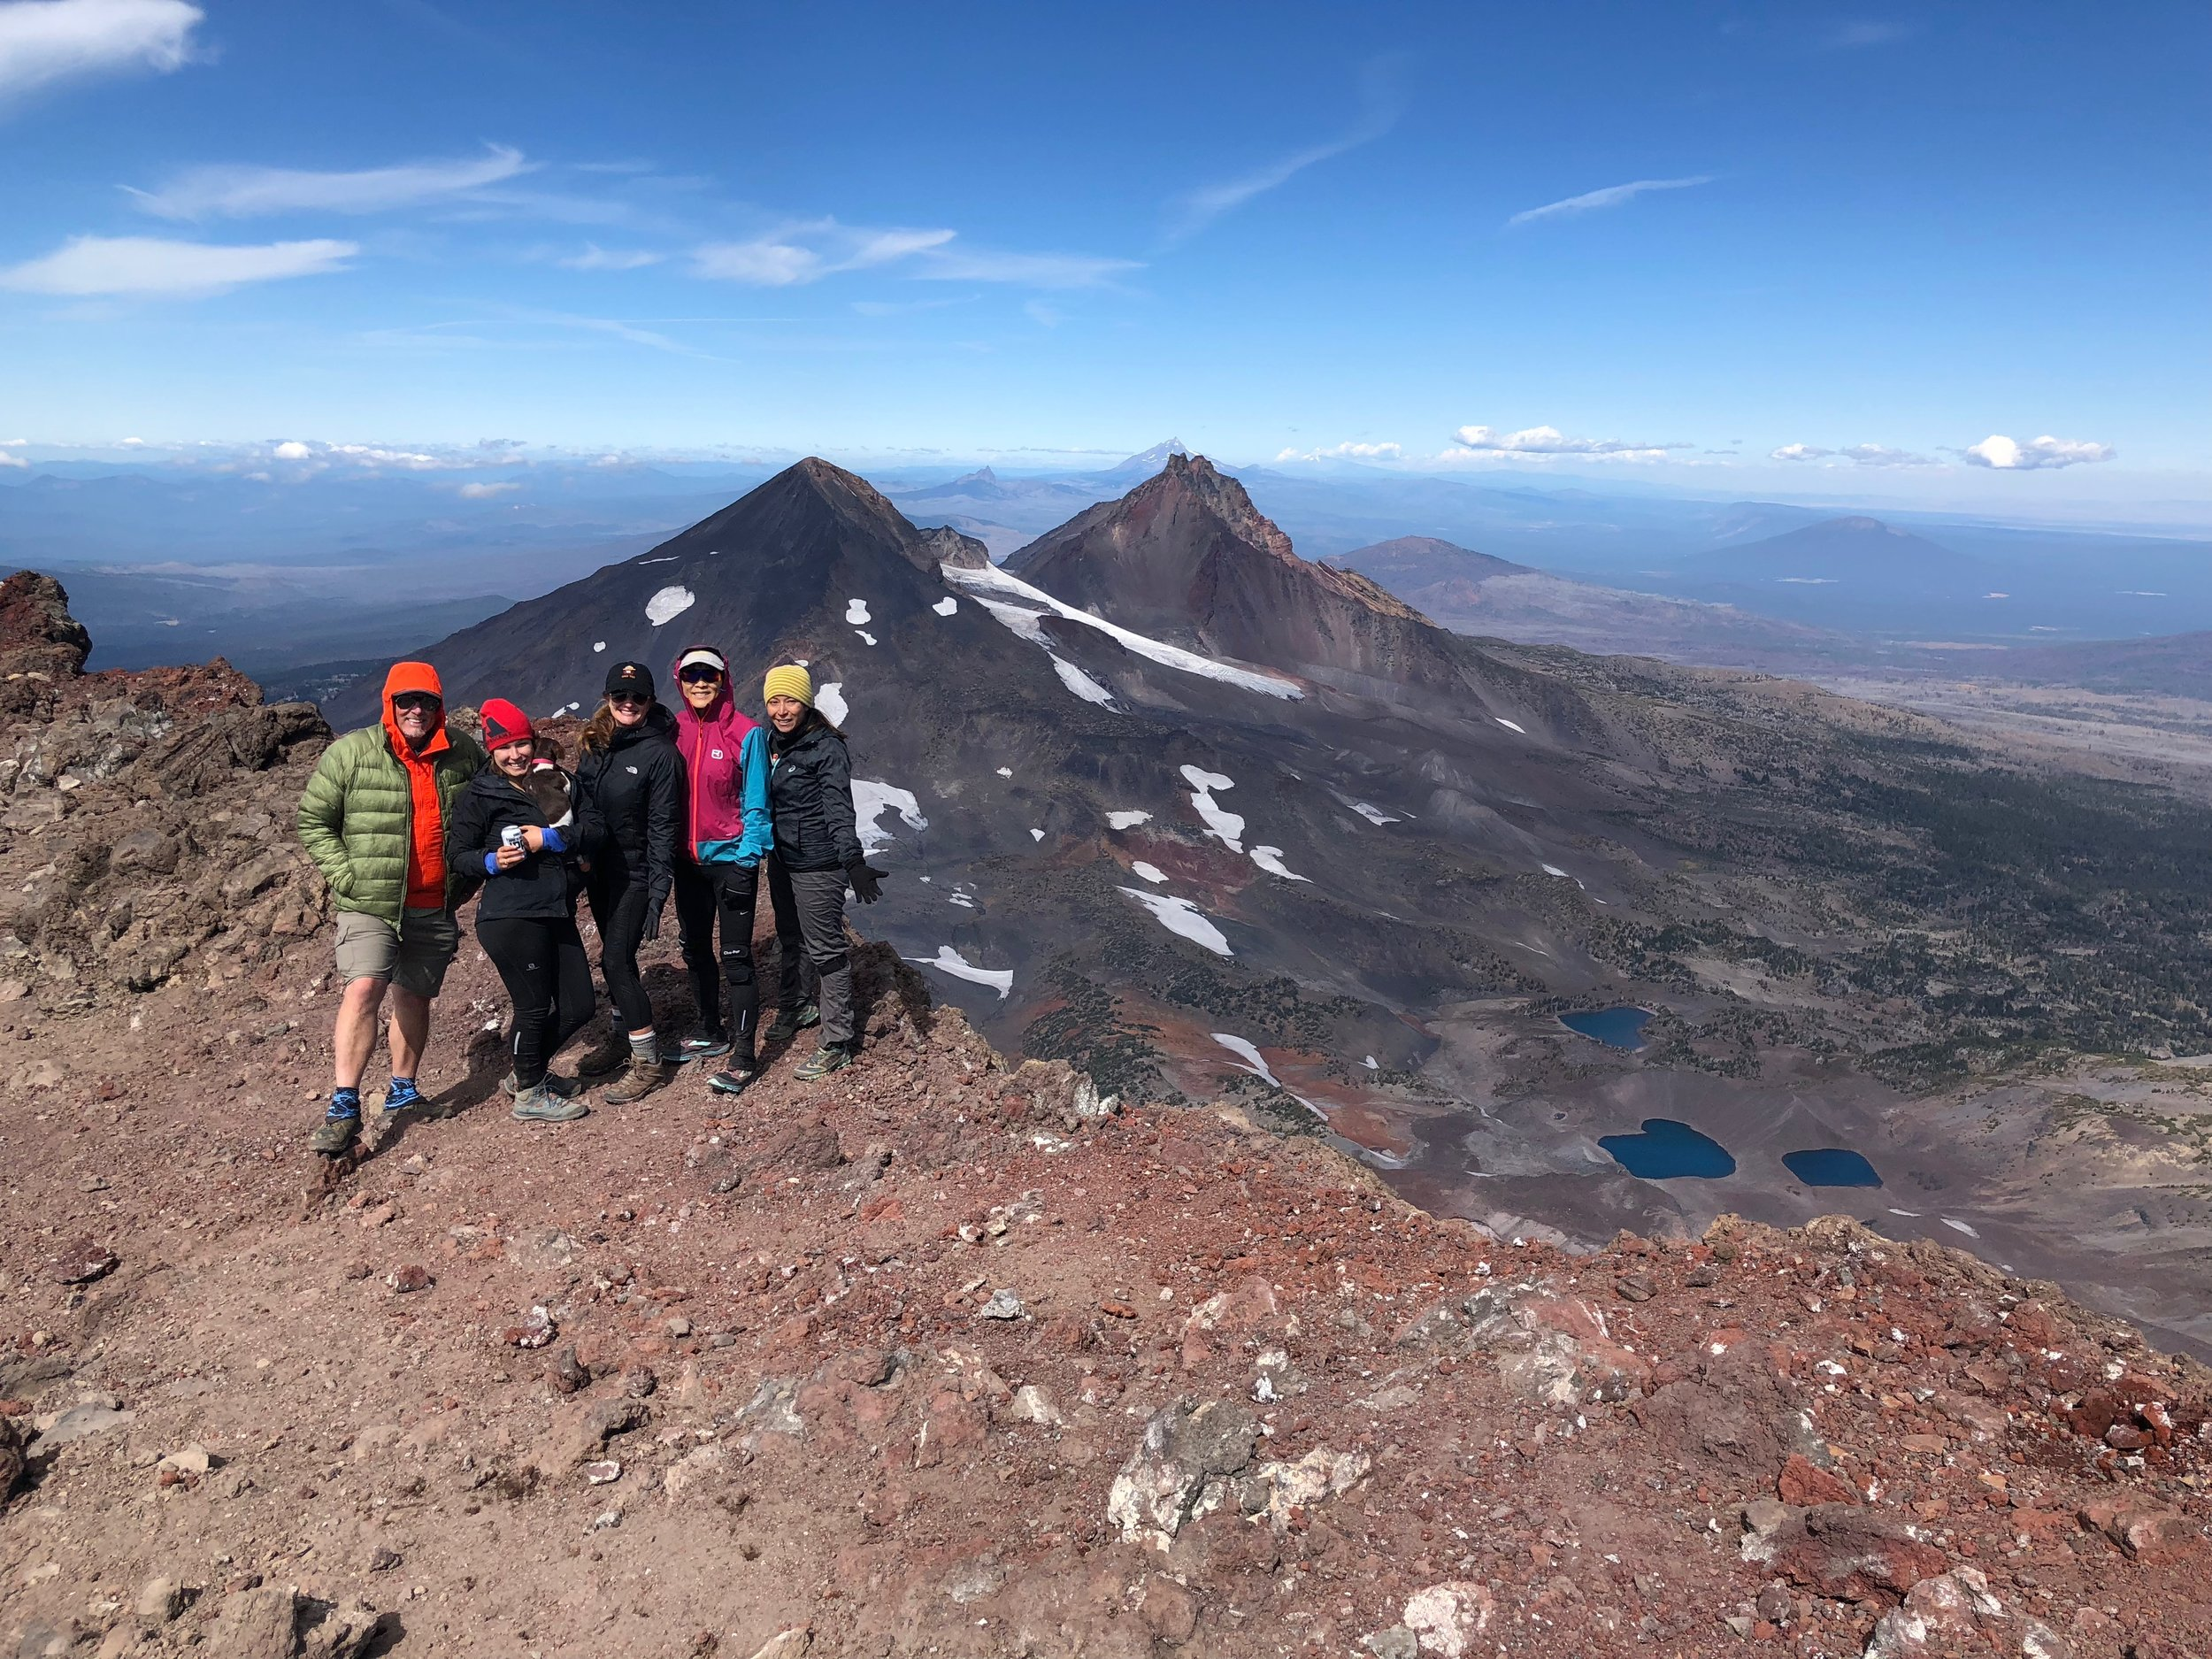 On the summit of South Sister with Jeff Hester (founder of six pack of peaks challenge), Moo, Shannon, Shuping and Jenn. By far, the most beautiful mountain I have ever hiked upon.